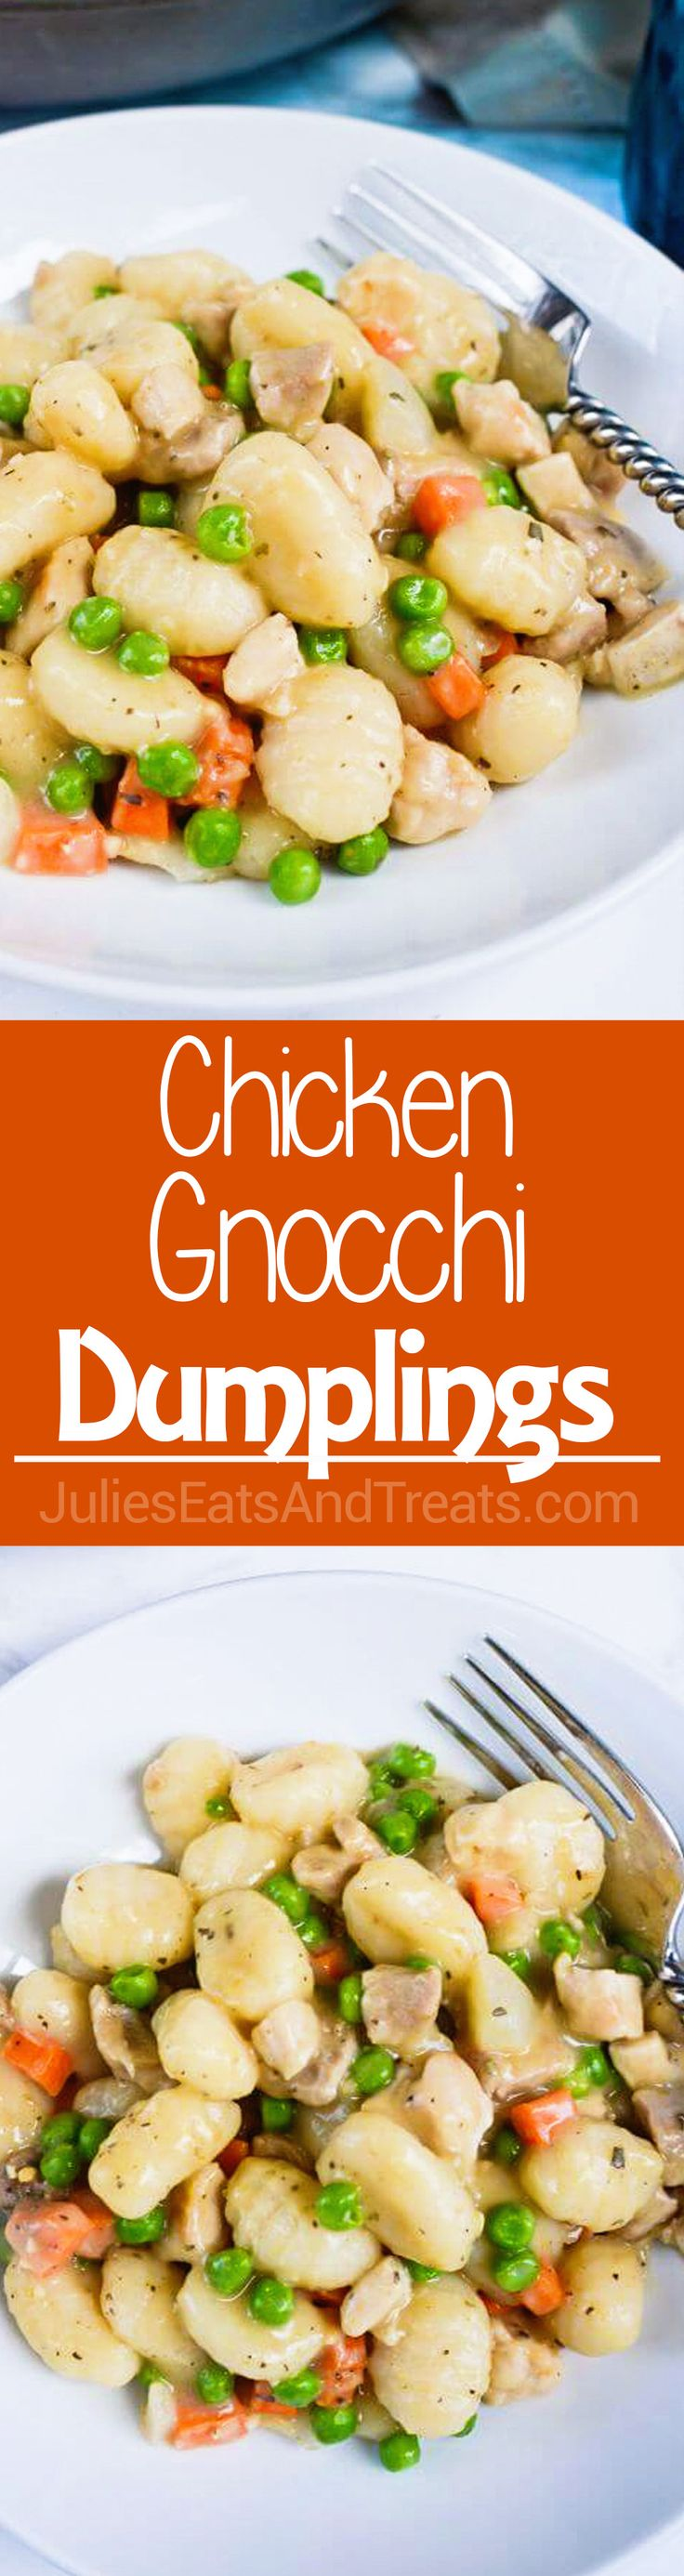 Chicken Gnocchi Dumplings ~ Perfect, Hearty Comfort Food! This Easy, Dinner is Ready in under 30 Minutes